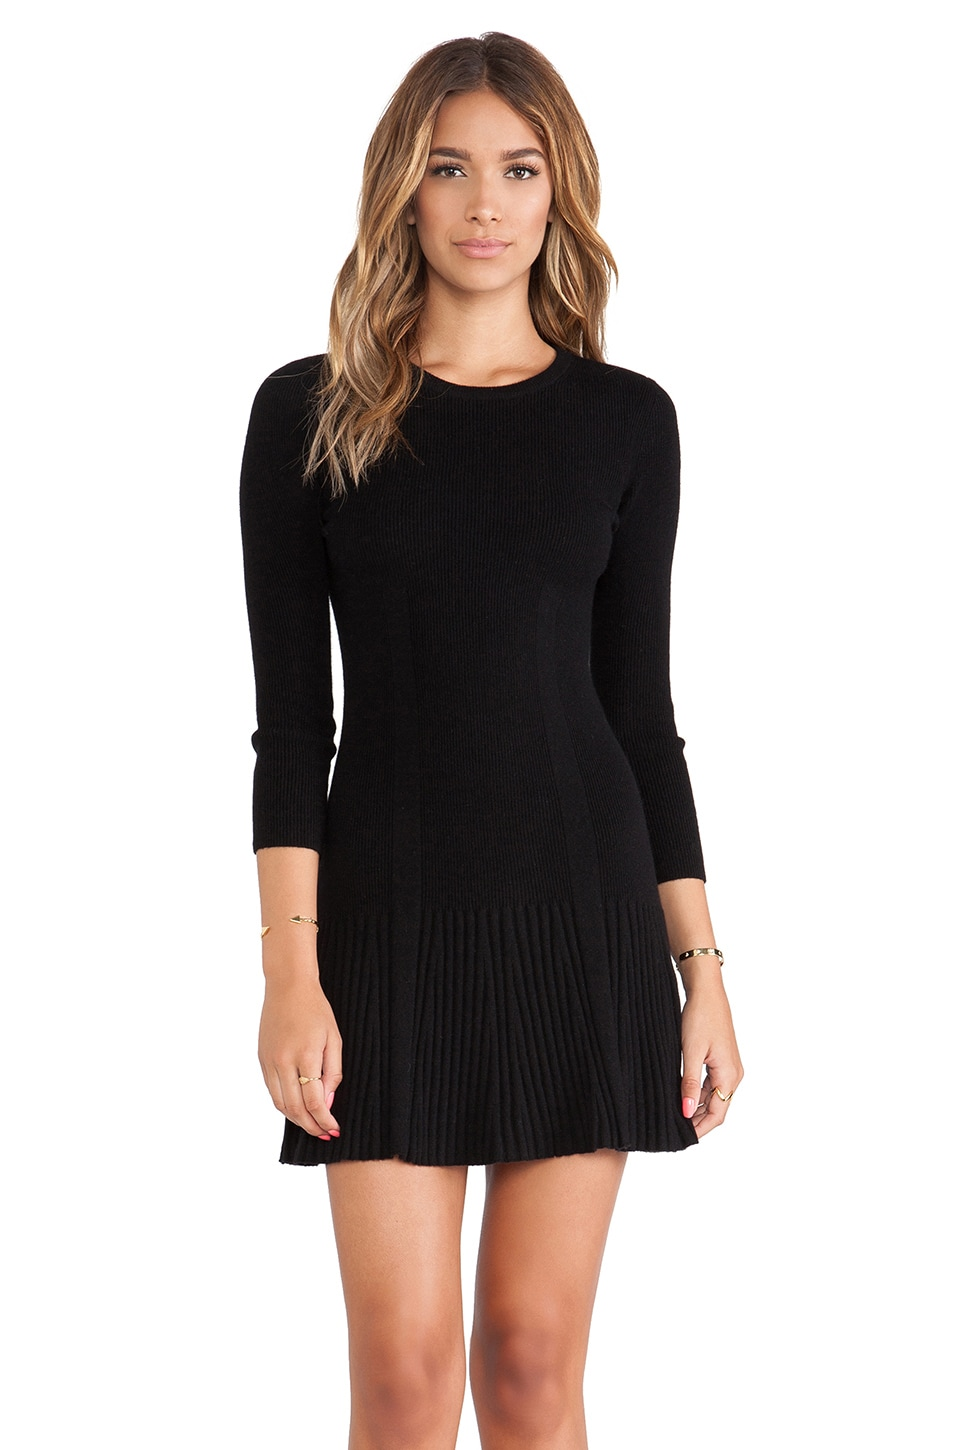 Joie Jolia Sweater Dress in Dark Black